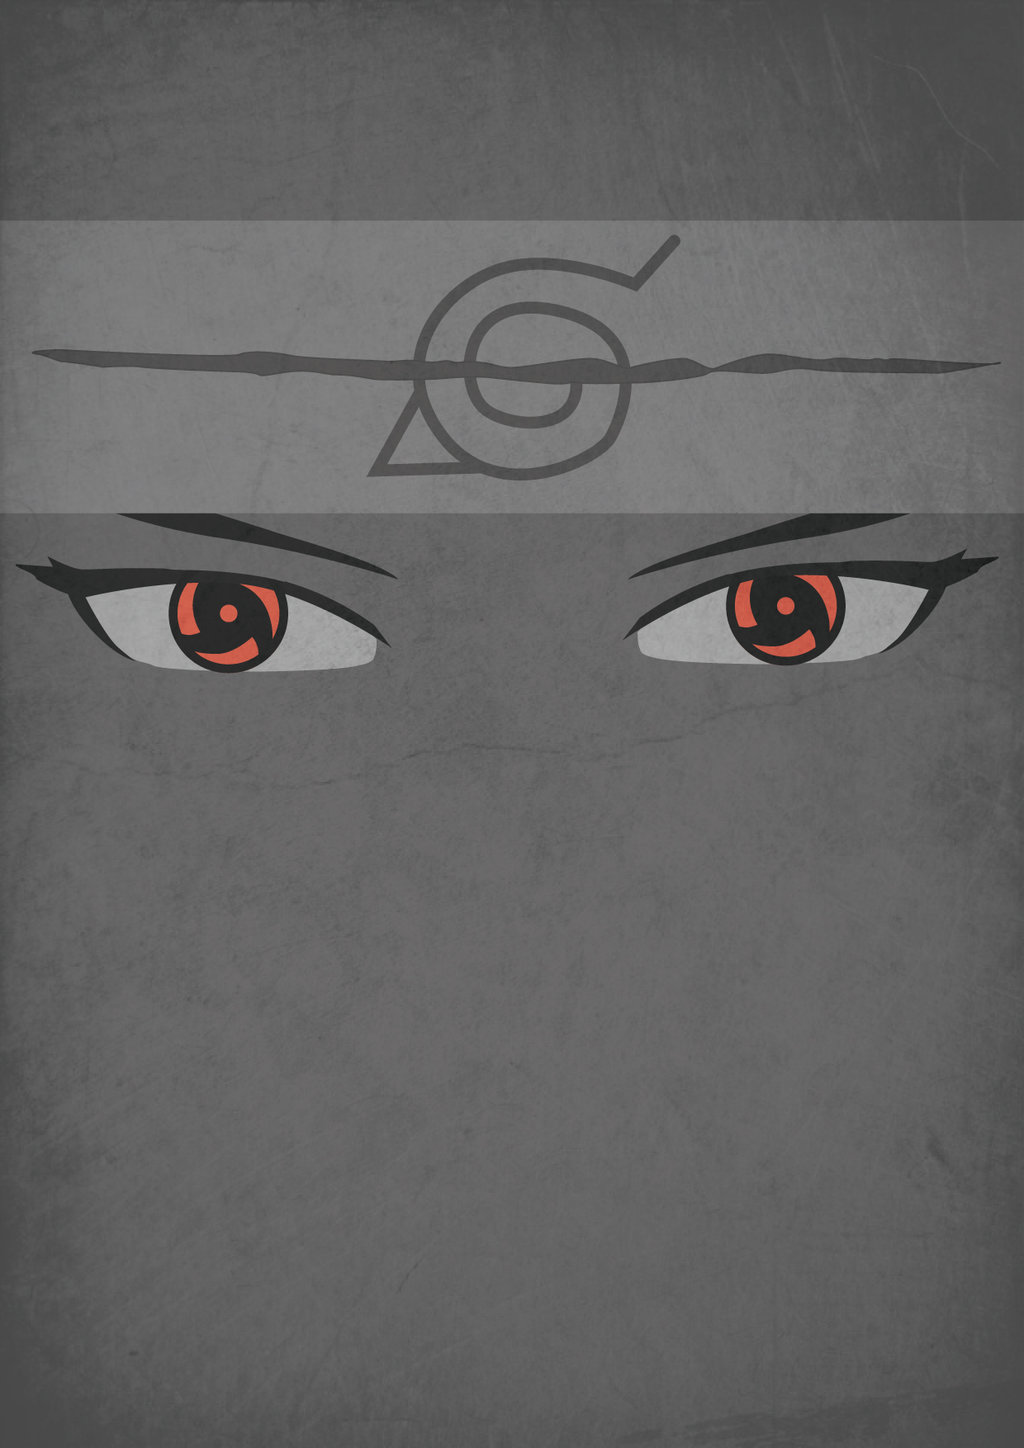 Itachi iPhone Wallpapers - Page 4 of 6 ...